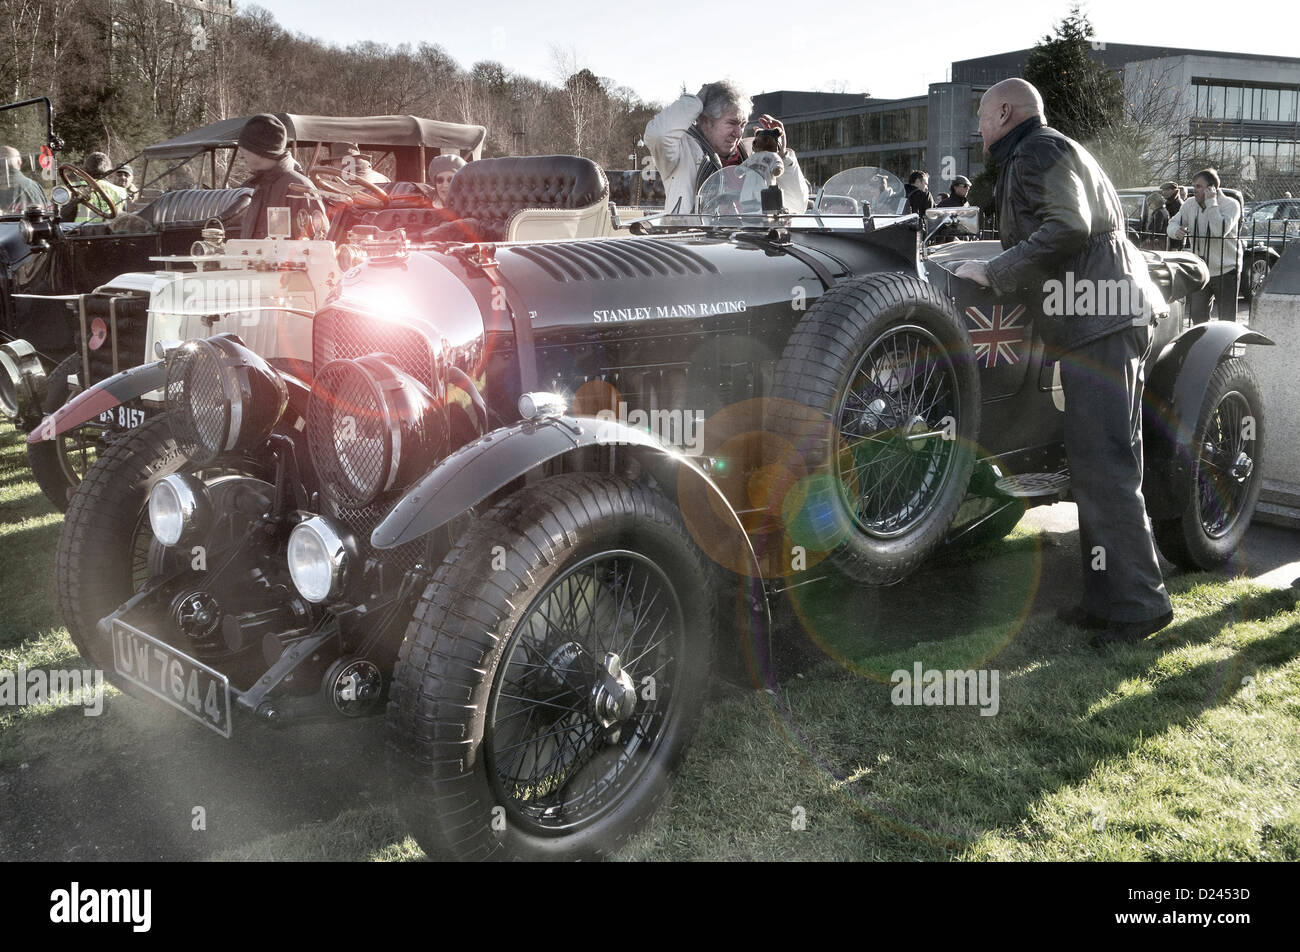 Vintage blower Bentley at the Brooklands Museum New Year's day gathering. - Stock Image